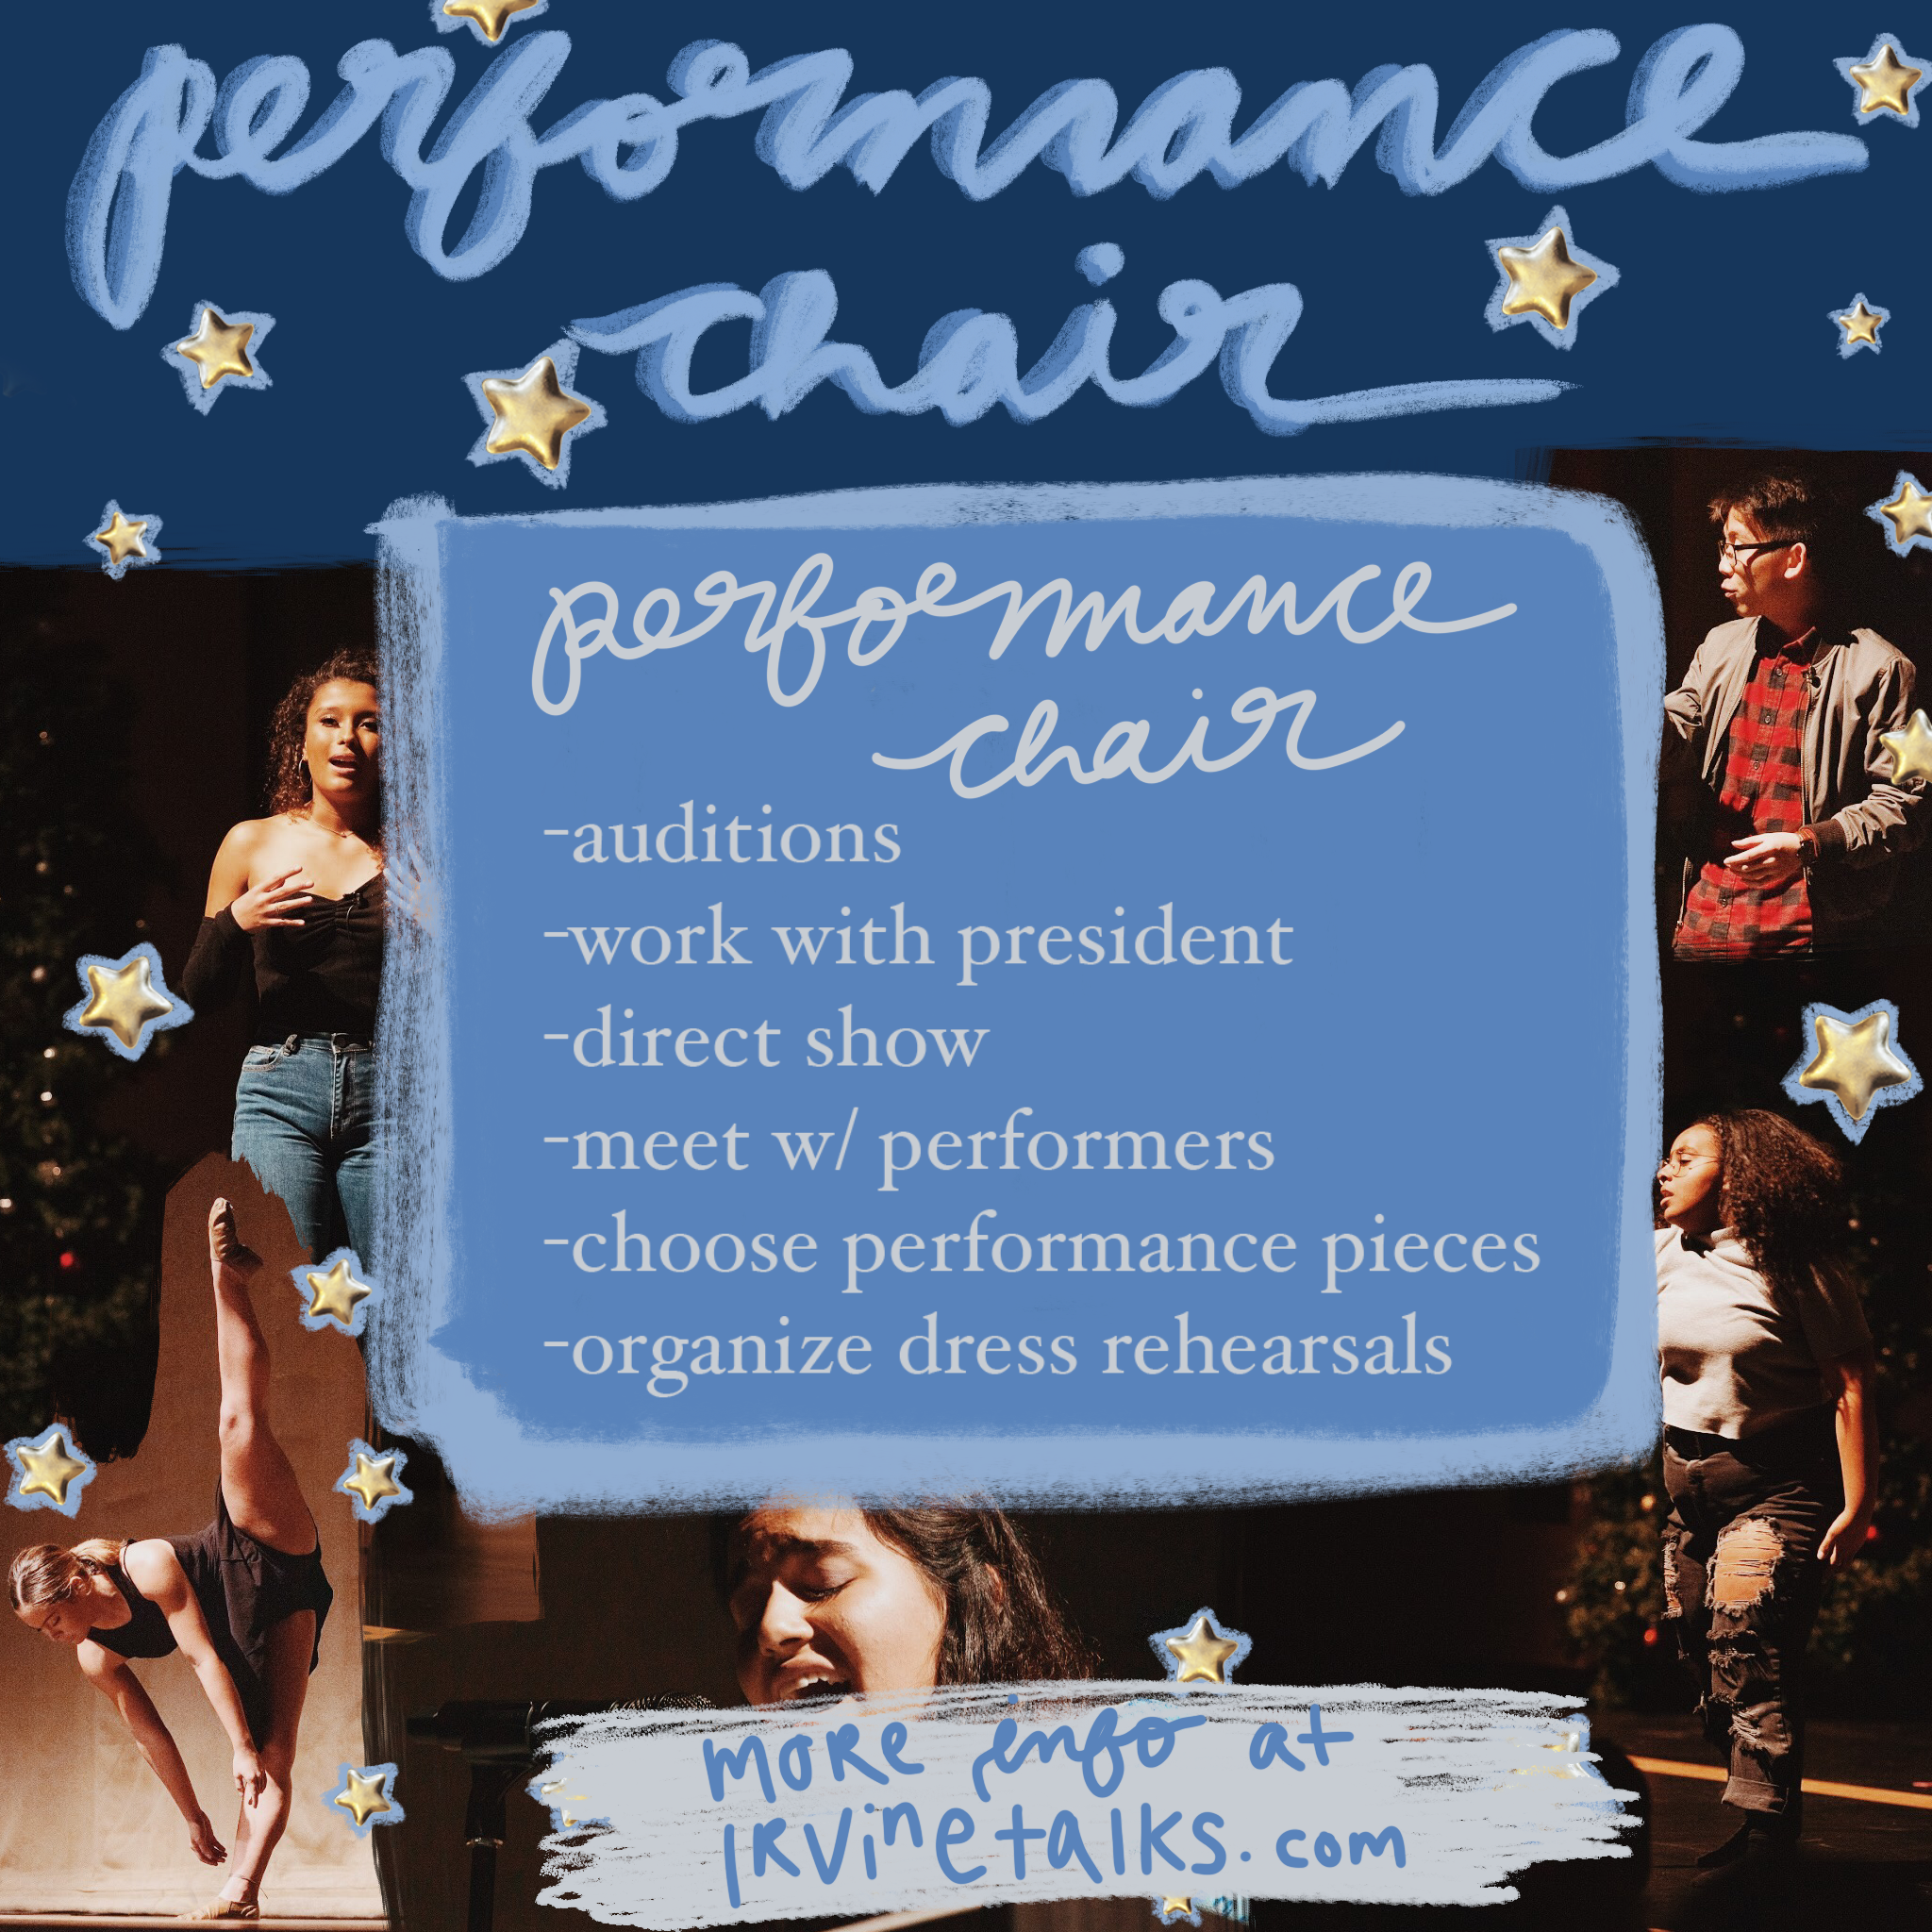 Performance Chair - The Performance Chair is in charge of coordinating and running auditions. Just as the event coordinator will work closely with the Vice President, the Performance Chair will share responsibilities with the President. That means they'll be assisting the President in directing the show, meeting with performers, choosing performance pieces, etc. They will also be responsible for organizing dress rehearsals and meetings with the speakers.